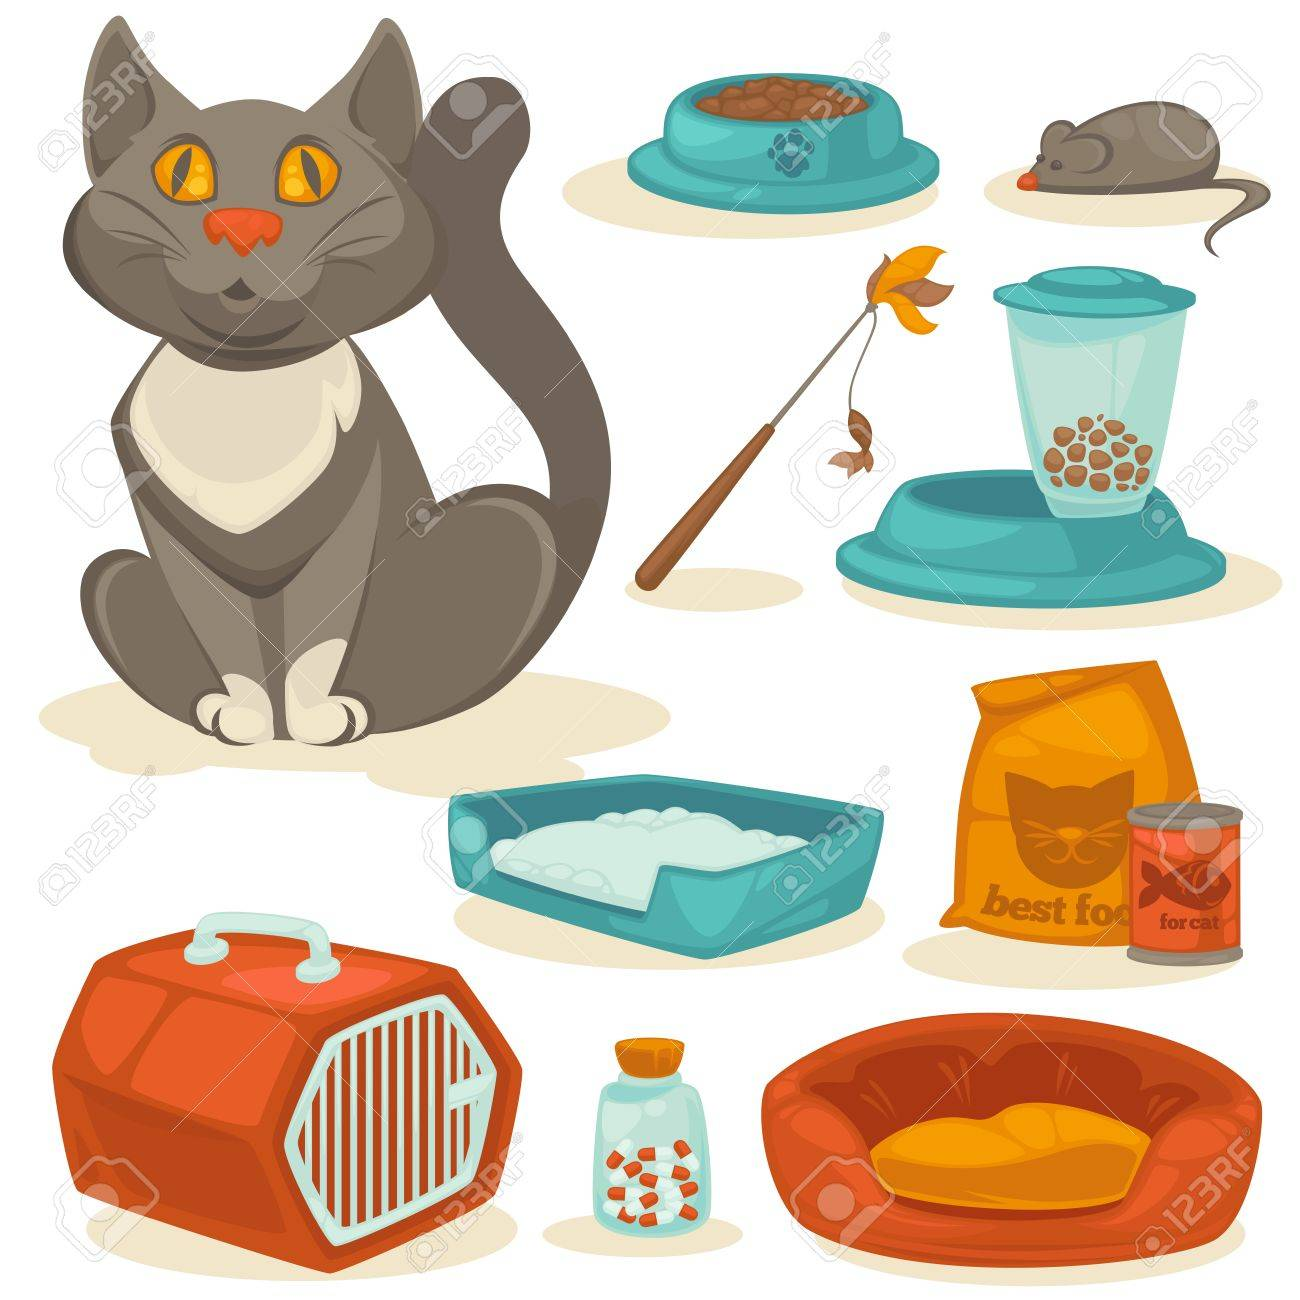 Cat accessories set. Pet supplies: food, toys, mouse, bowl and box, toilet and equipment for grooming. Cartoon style. Vector illustration isolated on white background. - 63337050